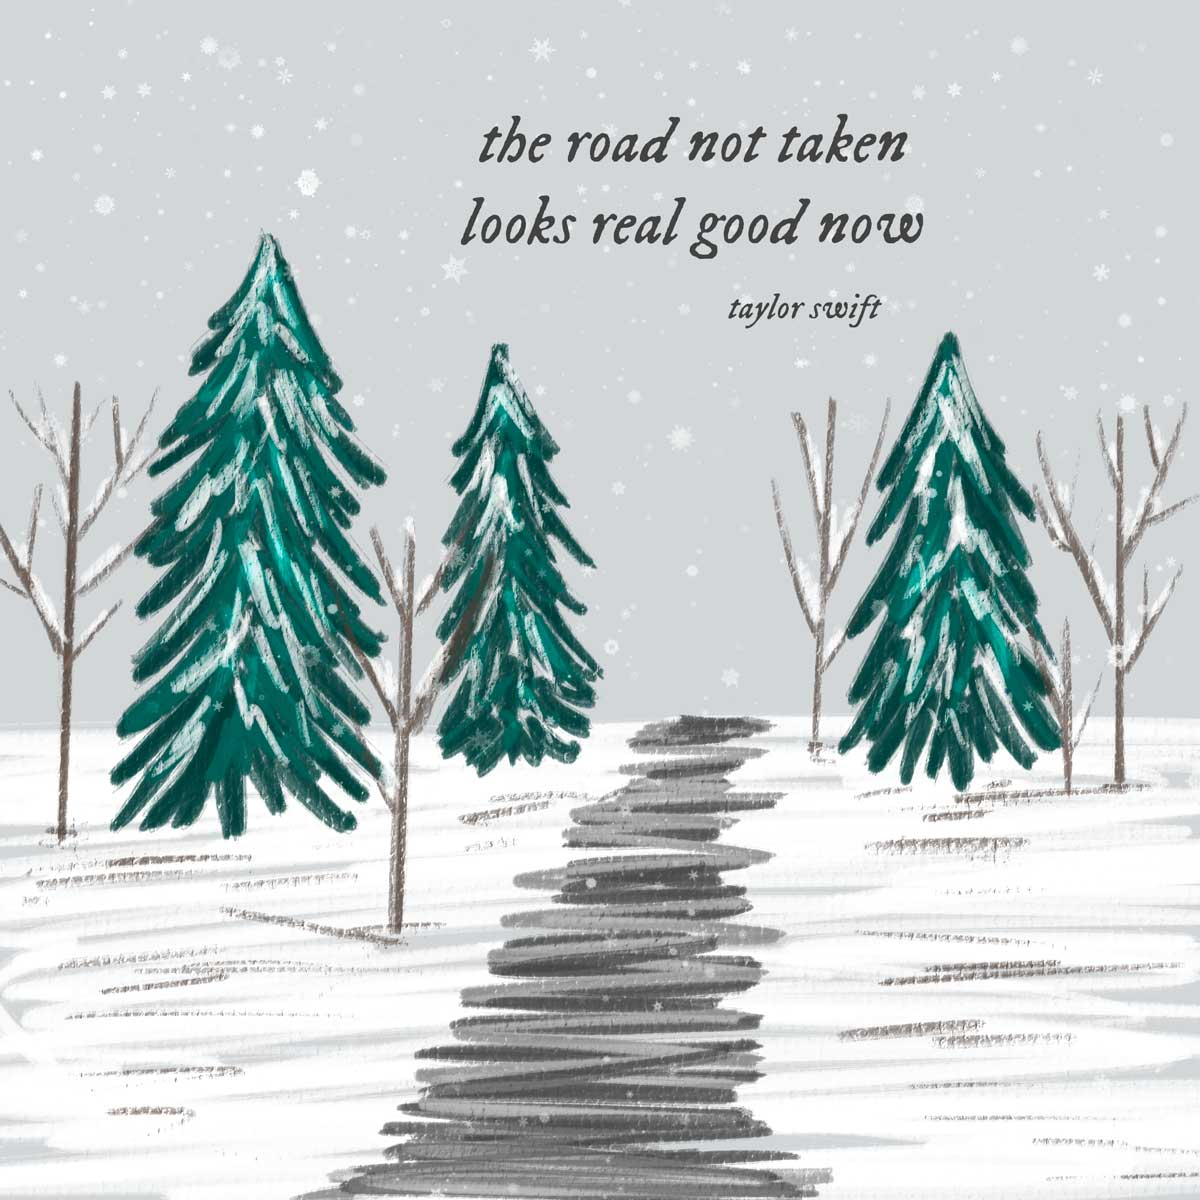 road not taken looks real good quote on drawing of snowy path.